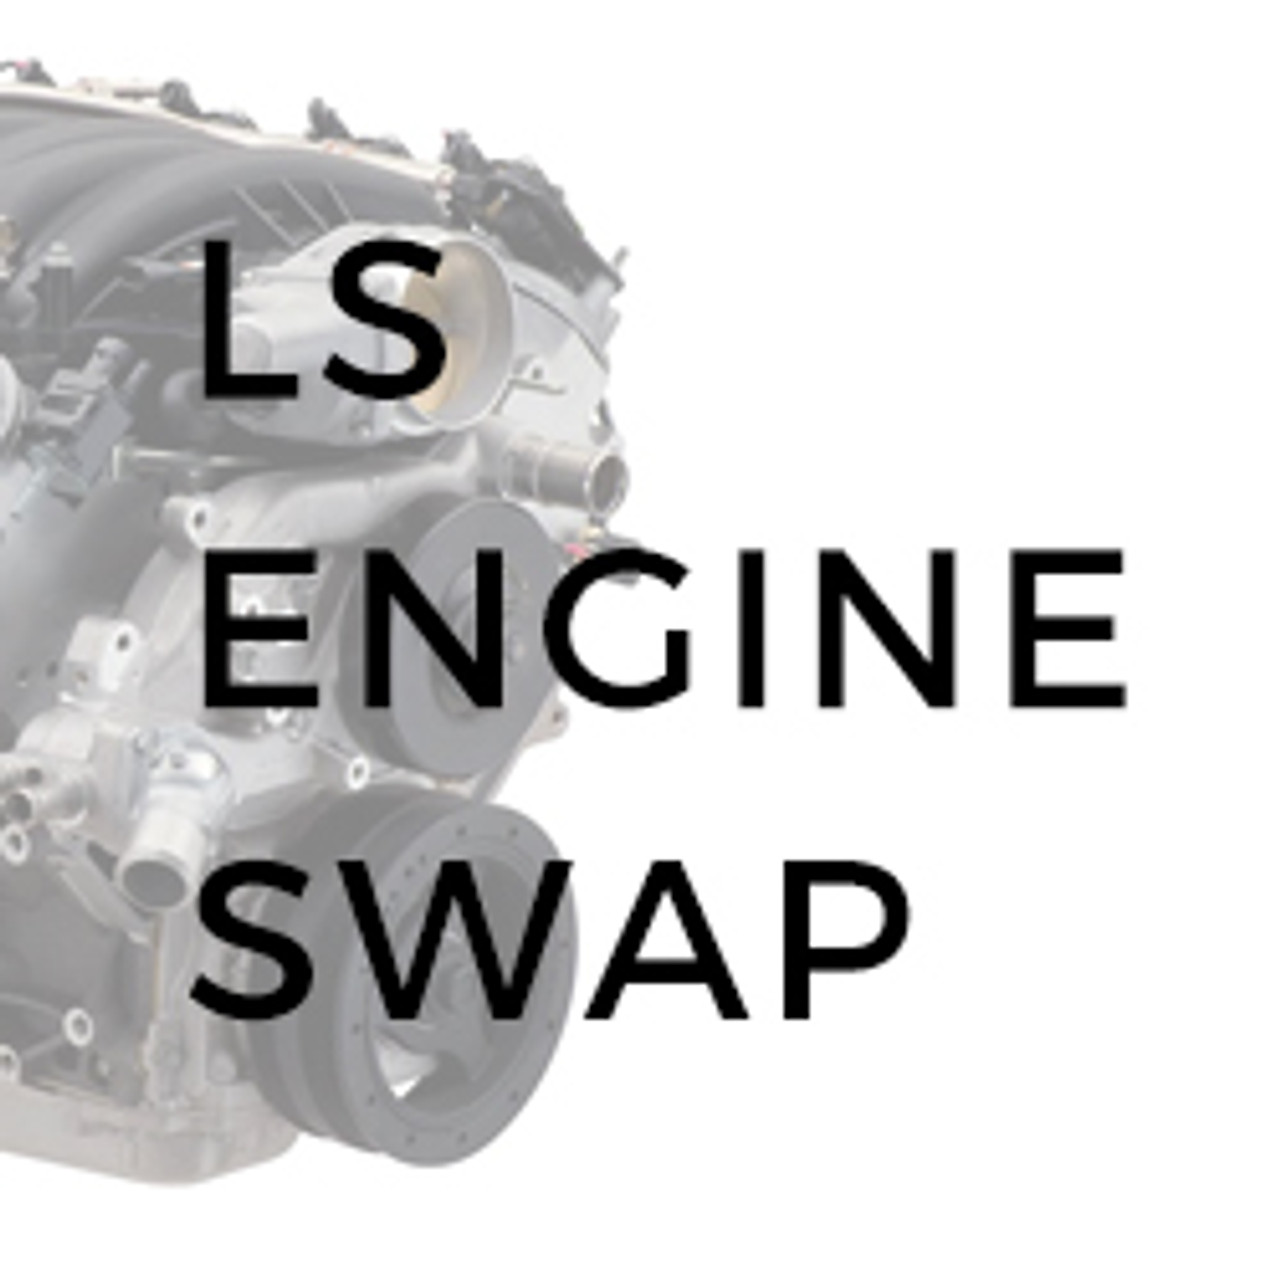 LS Engine Swap